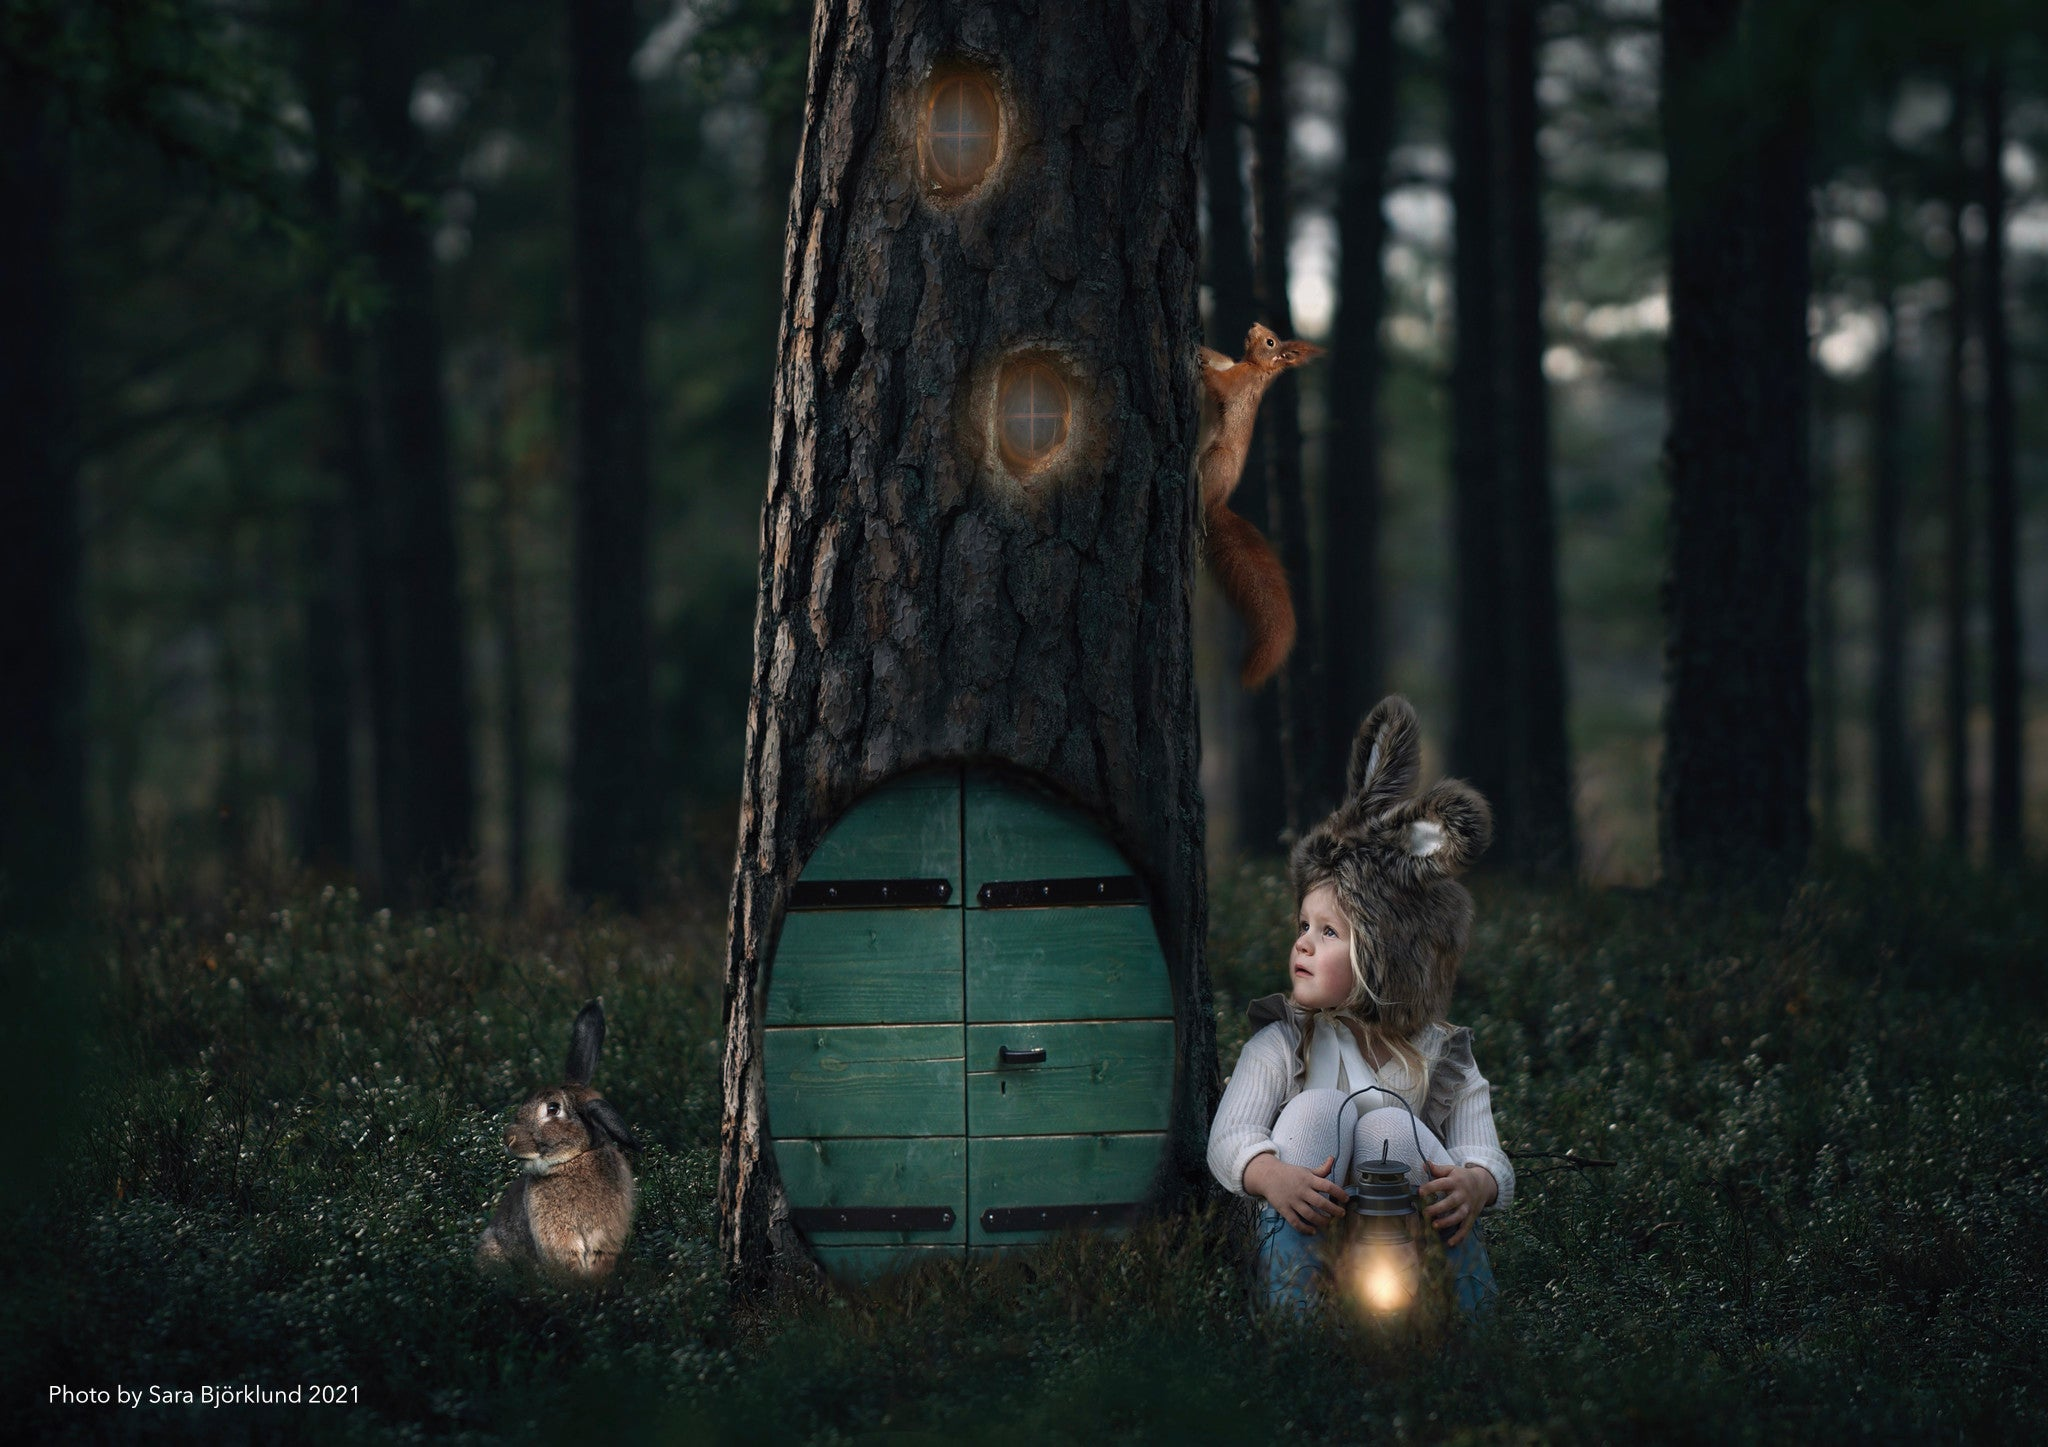 Small child with bunny ear hat sitting next to a big tree with a magic door.